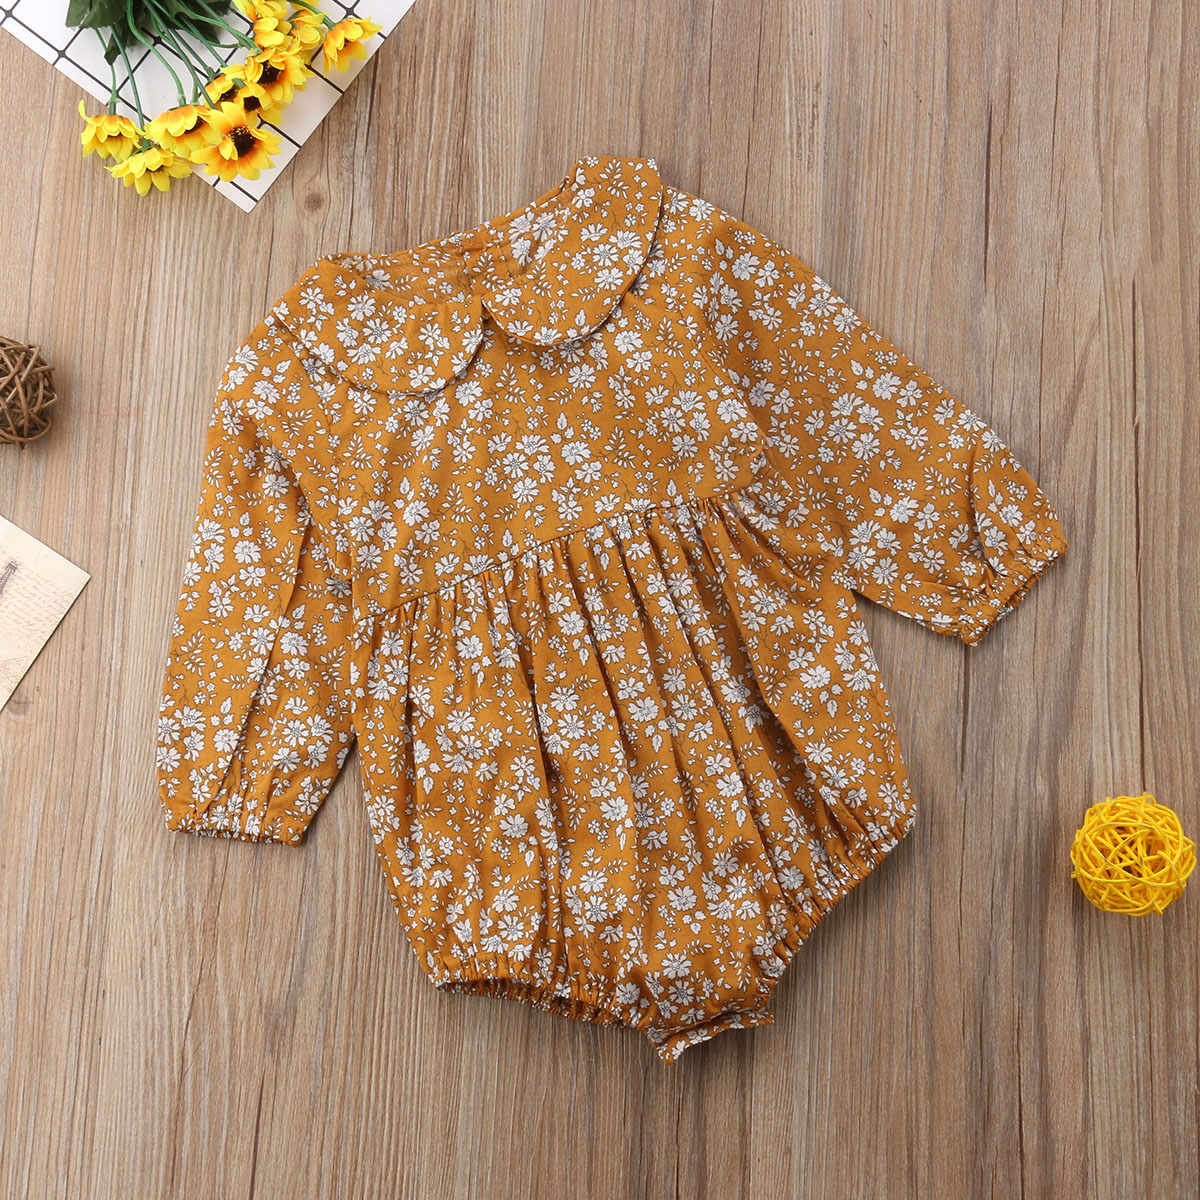 fff890ab9 Newborn Baby Girls Clothing Infant Baby Girls Floral Rompers Long ...